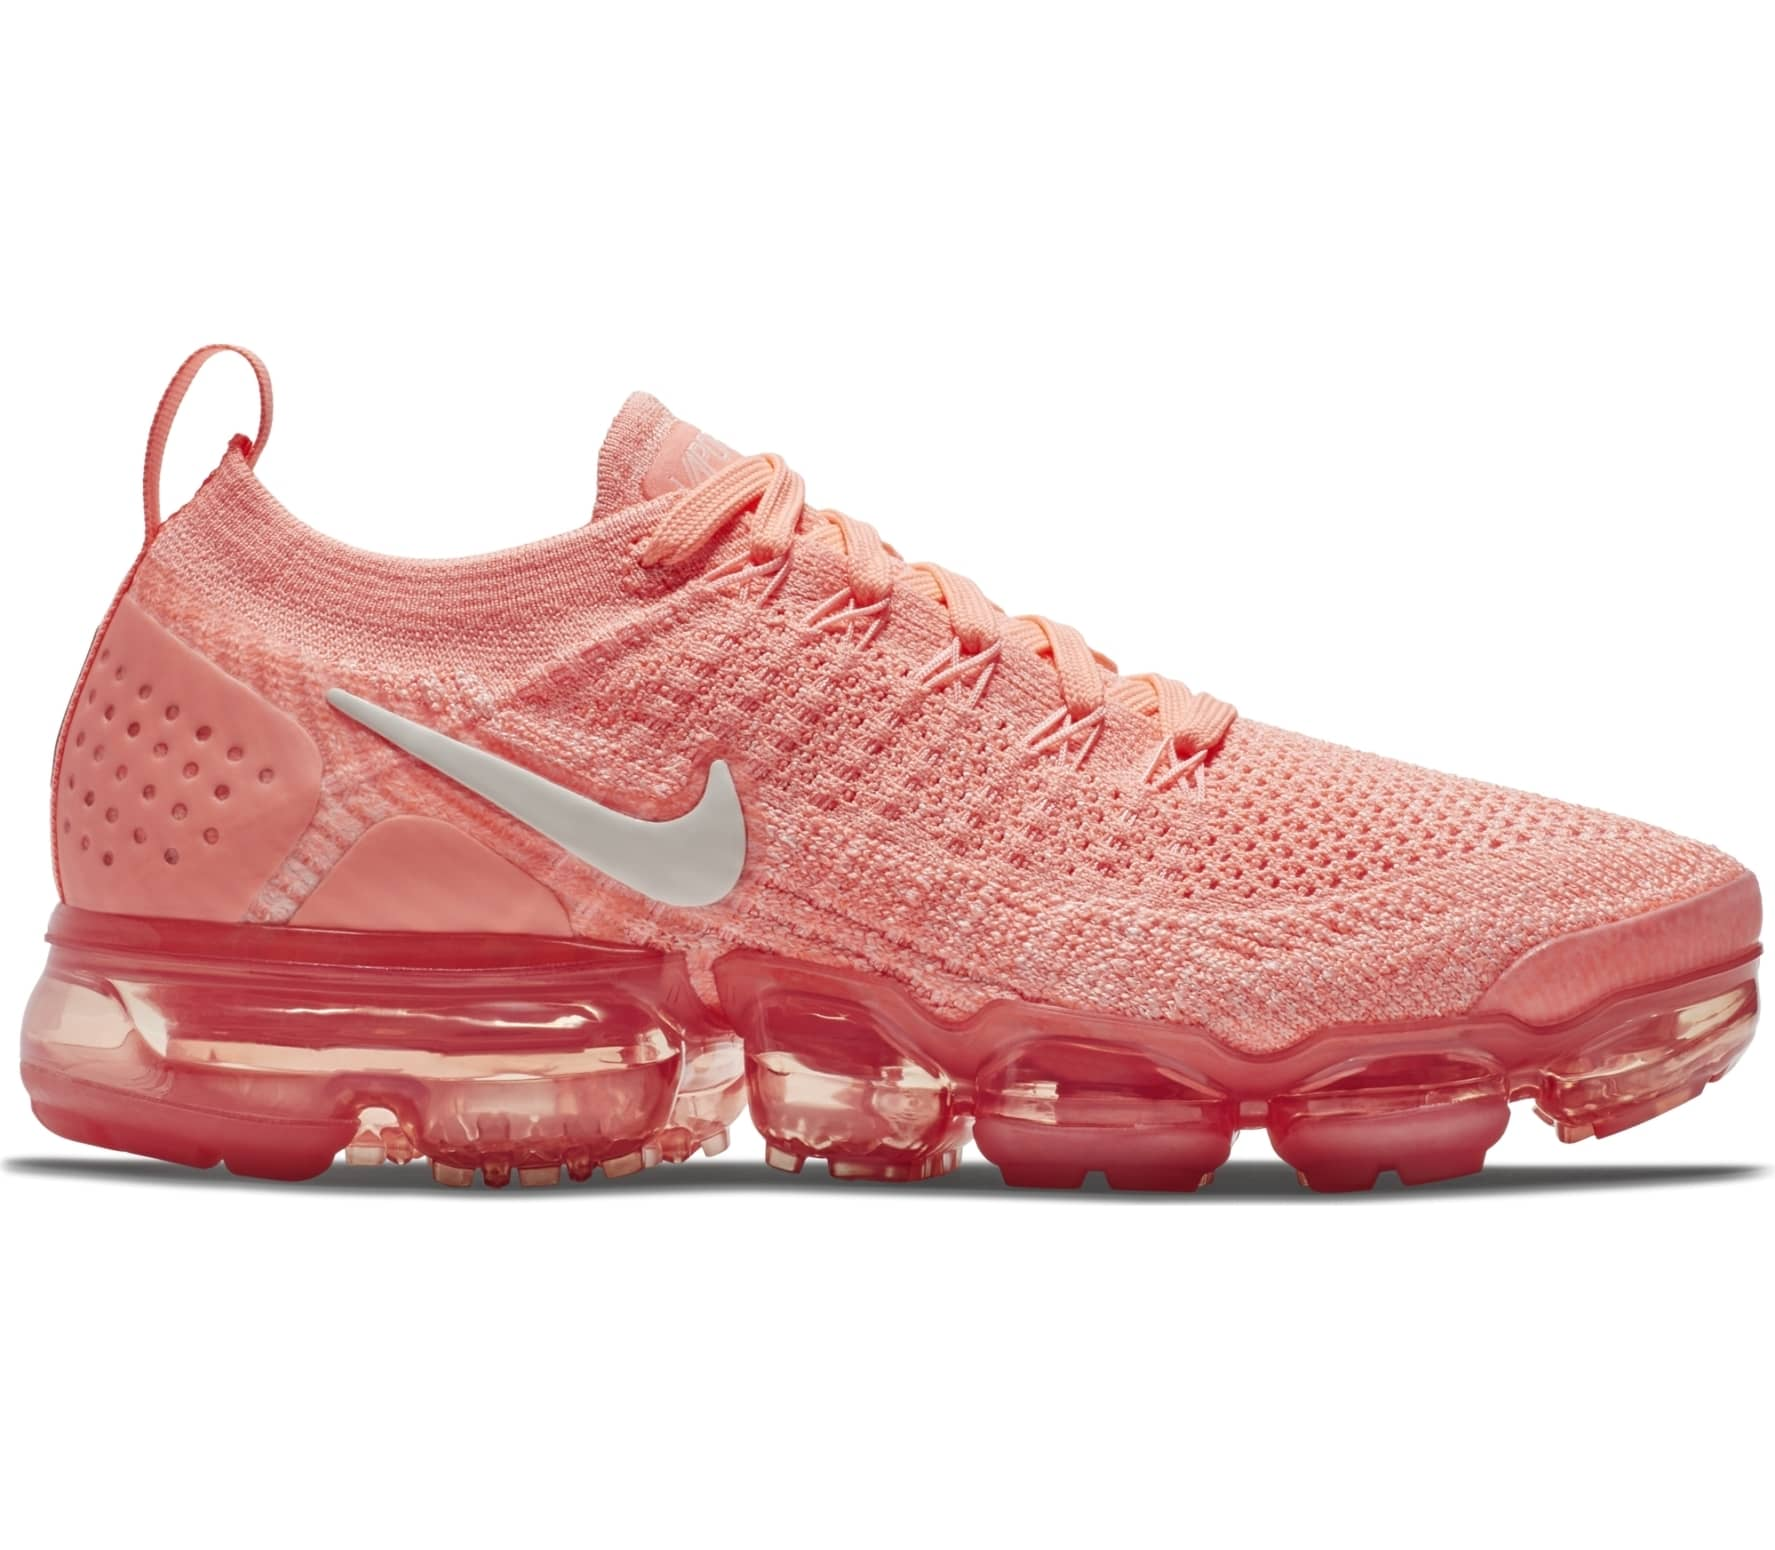 5d516d88d7 Nike - Air VaporMax Flyknit 2 women's running shoes (coral/pink ...